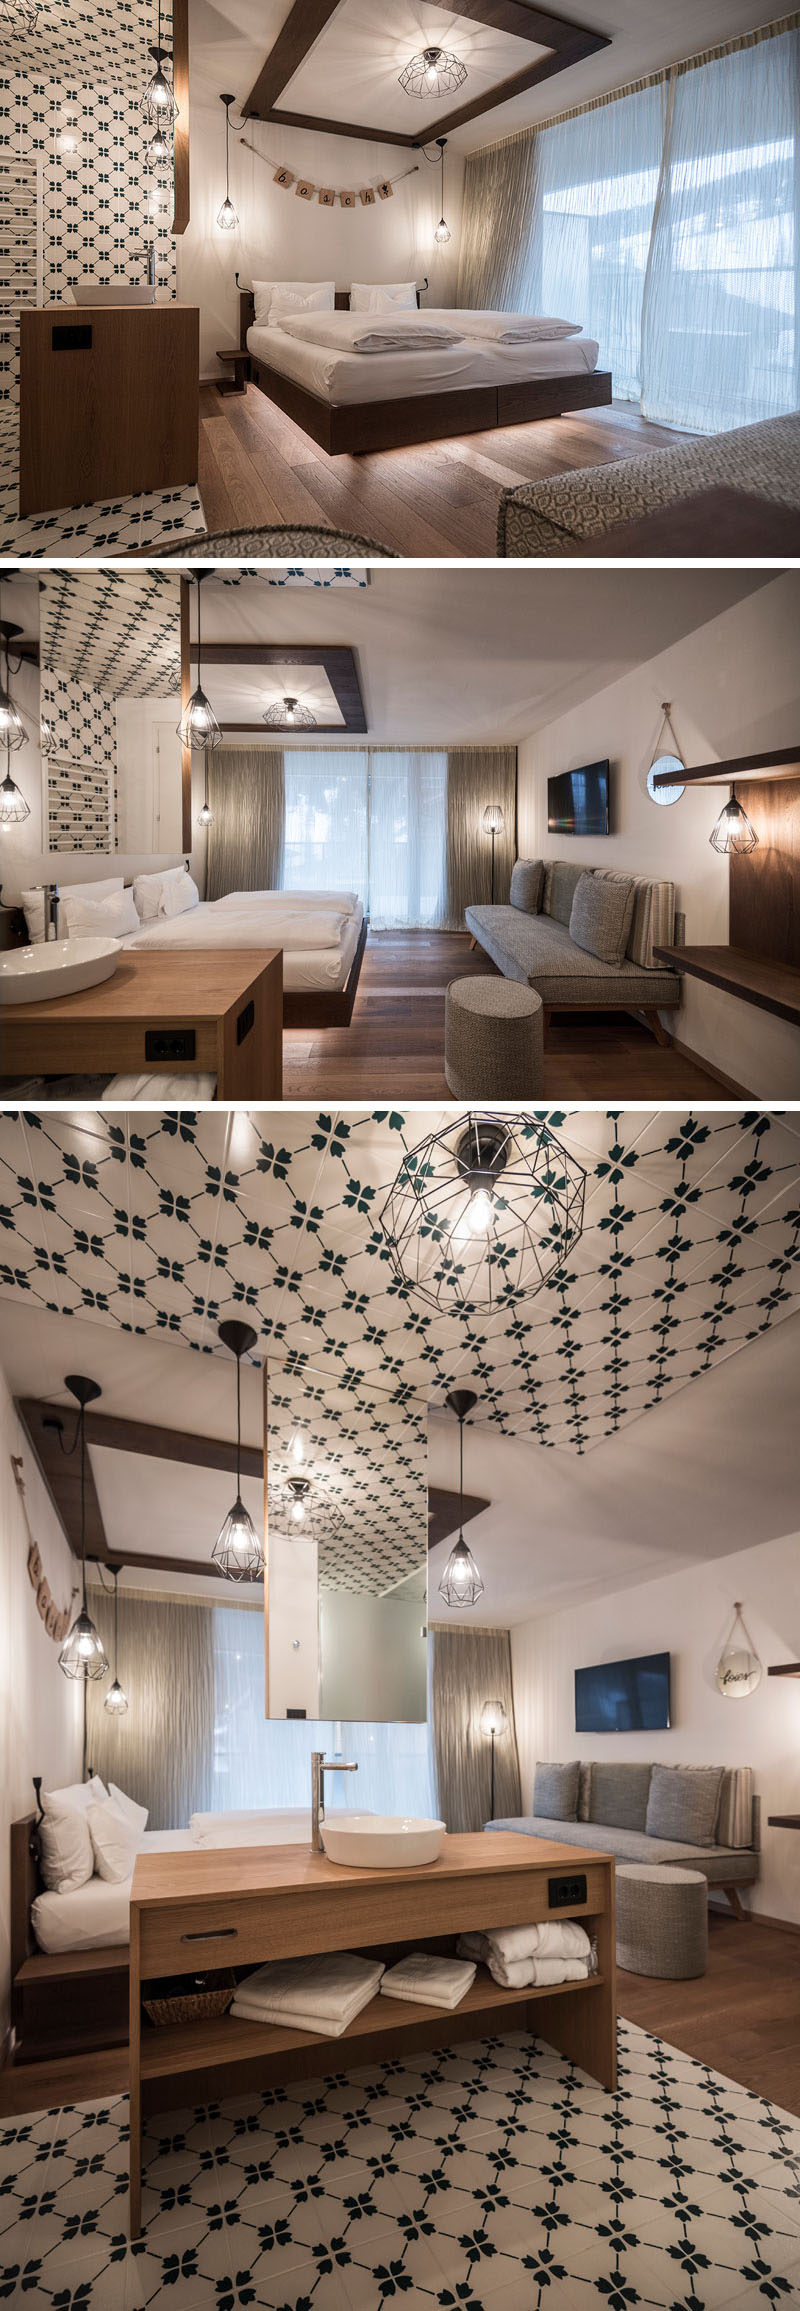 Green and white tiles designate the washroom in this modern hotel room, that has a mirror hanging from the ceiling and a wood vanity. The bed sits opposite the gray sofa, and appears to be floating because of the LED lights hidden underneath.